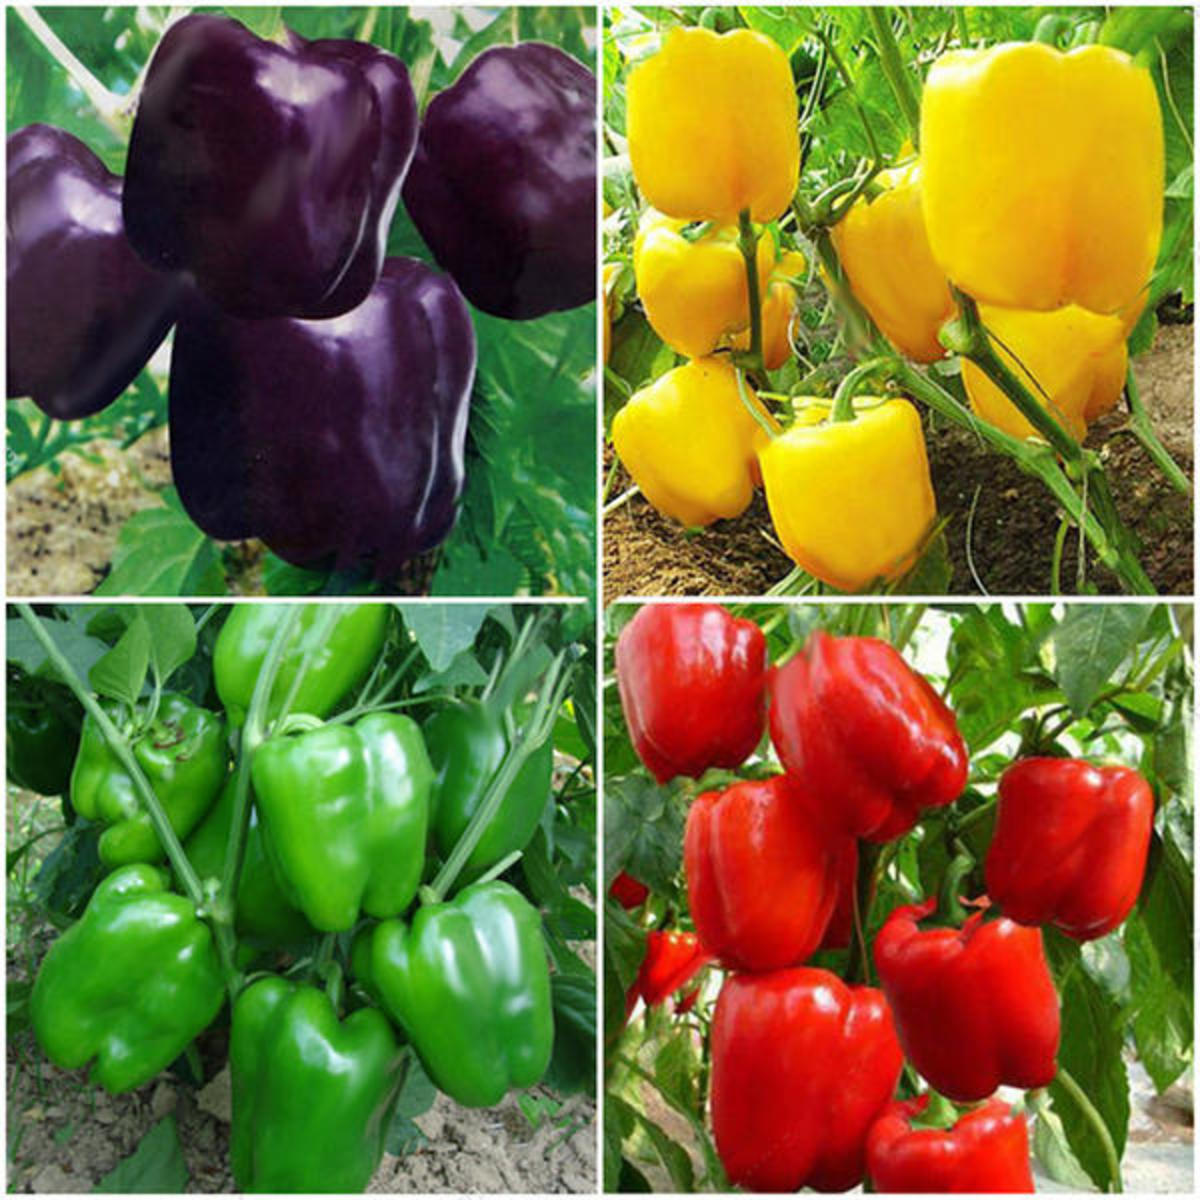 Planting Peppers in Your Ohio Garden